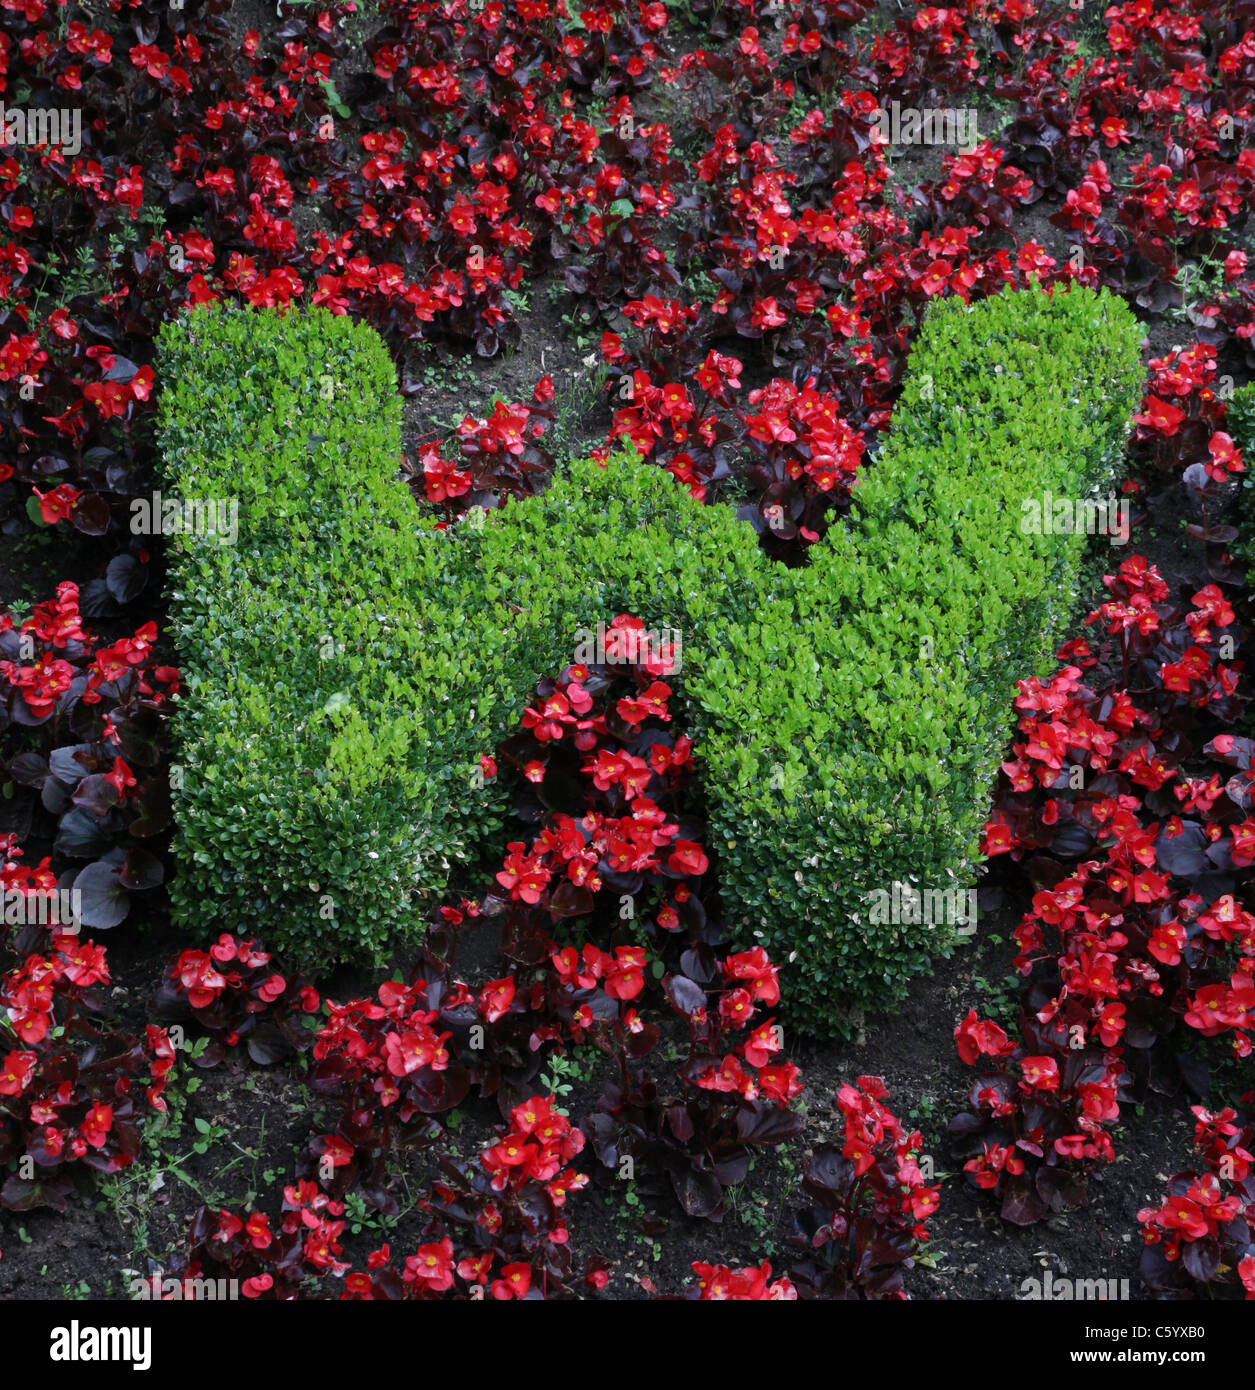 The letter W in a floral display - Stock Image